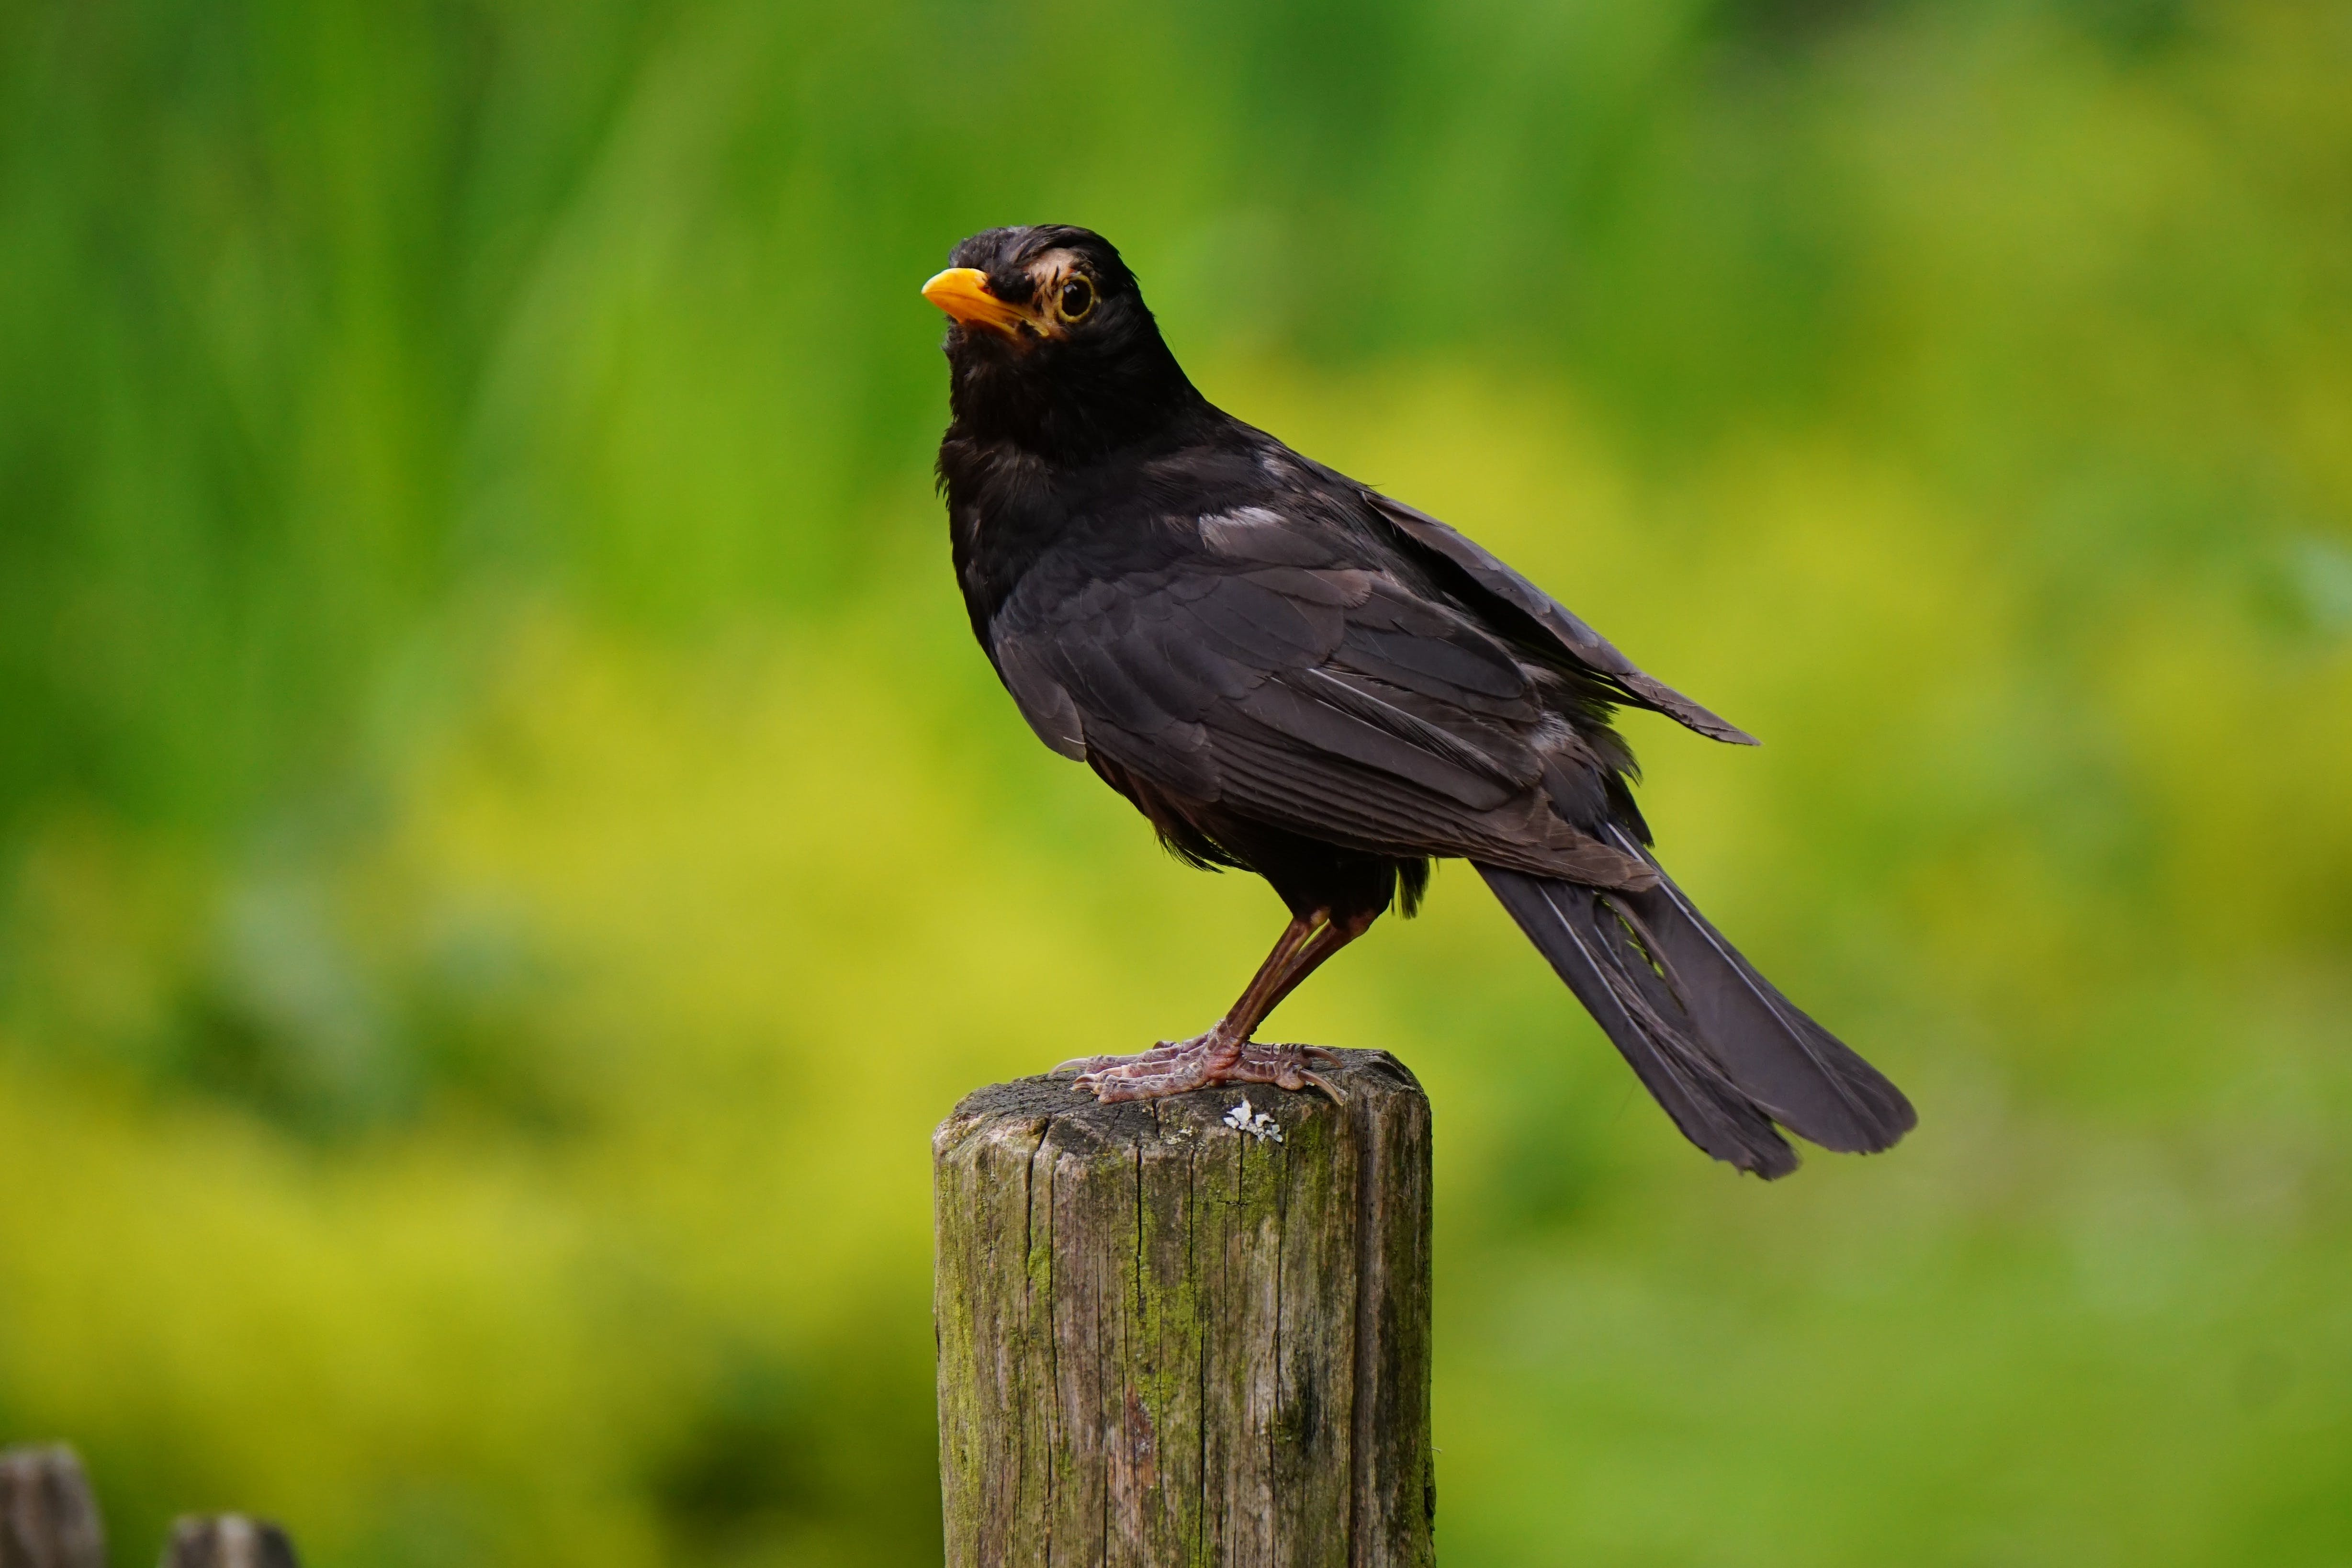 Black Bird Perched on Brown Wooden Pedestal Closeup Photography during Daytime